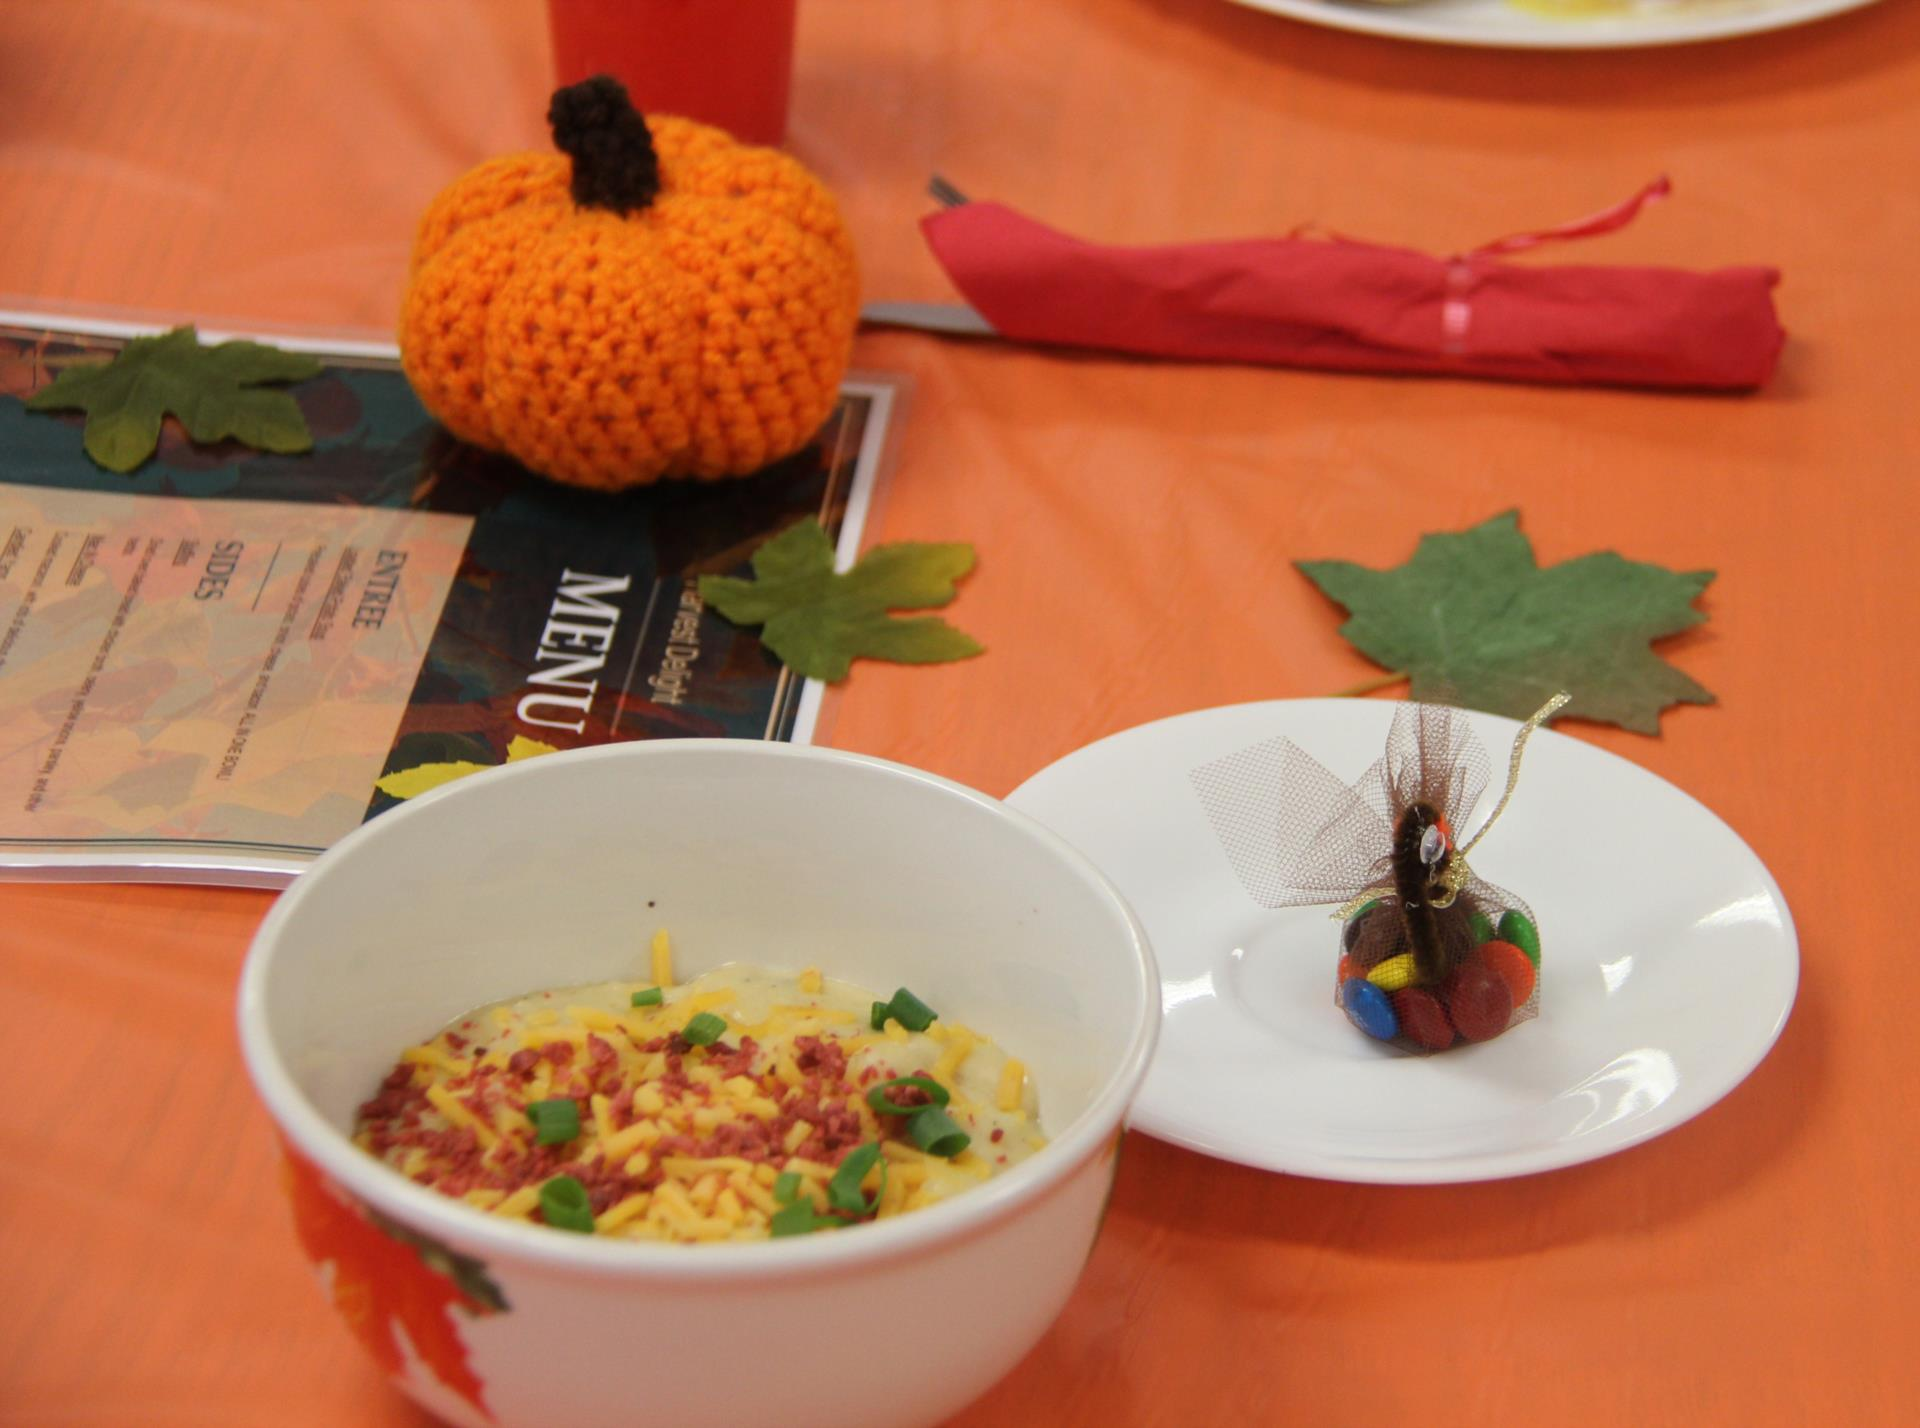 food and decorations on table